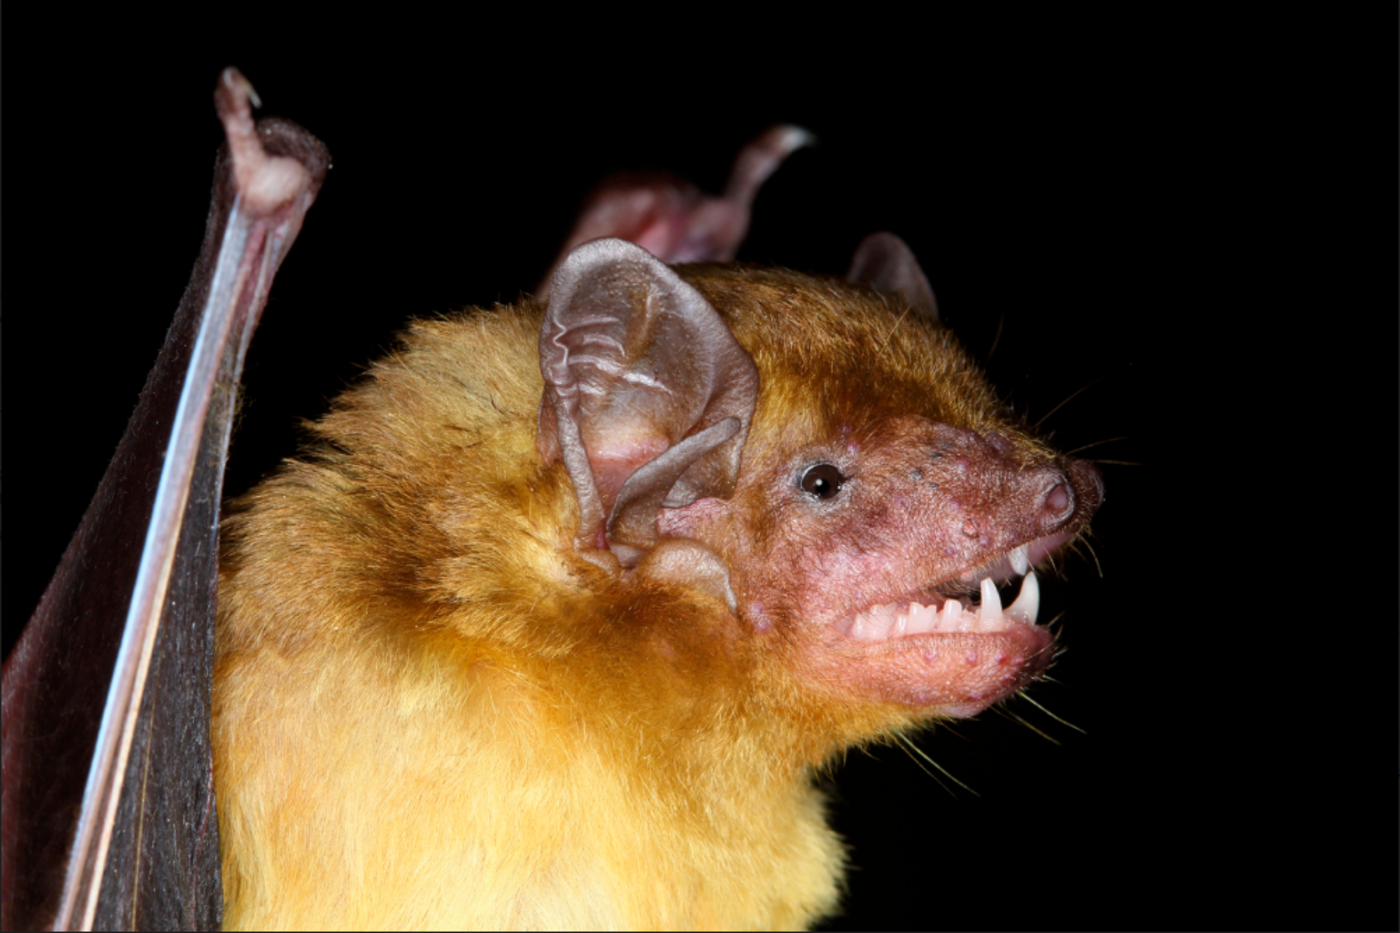 Close-up image of a bat.